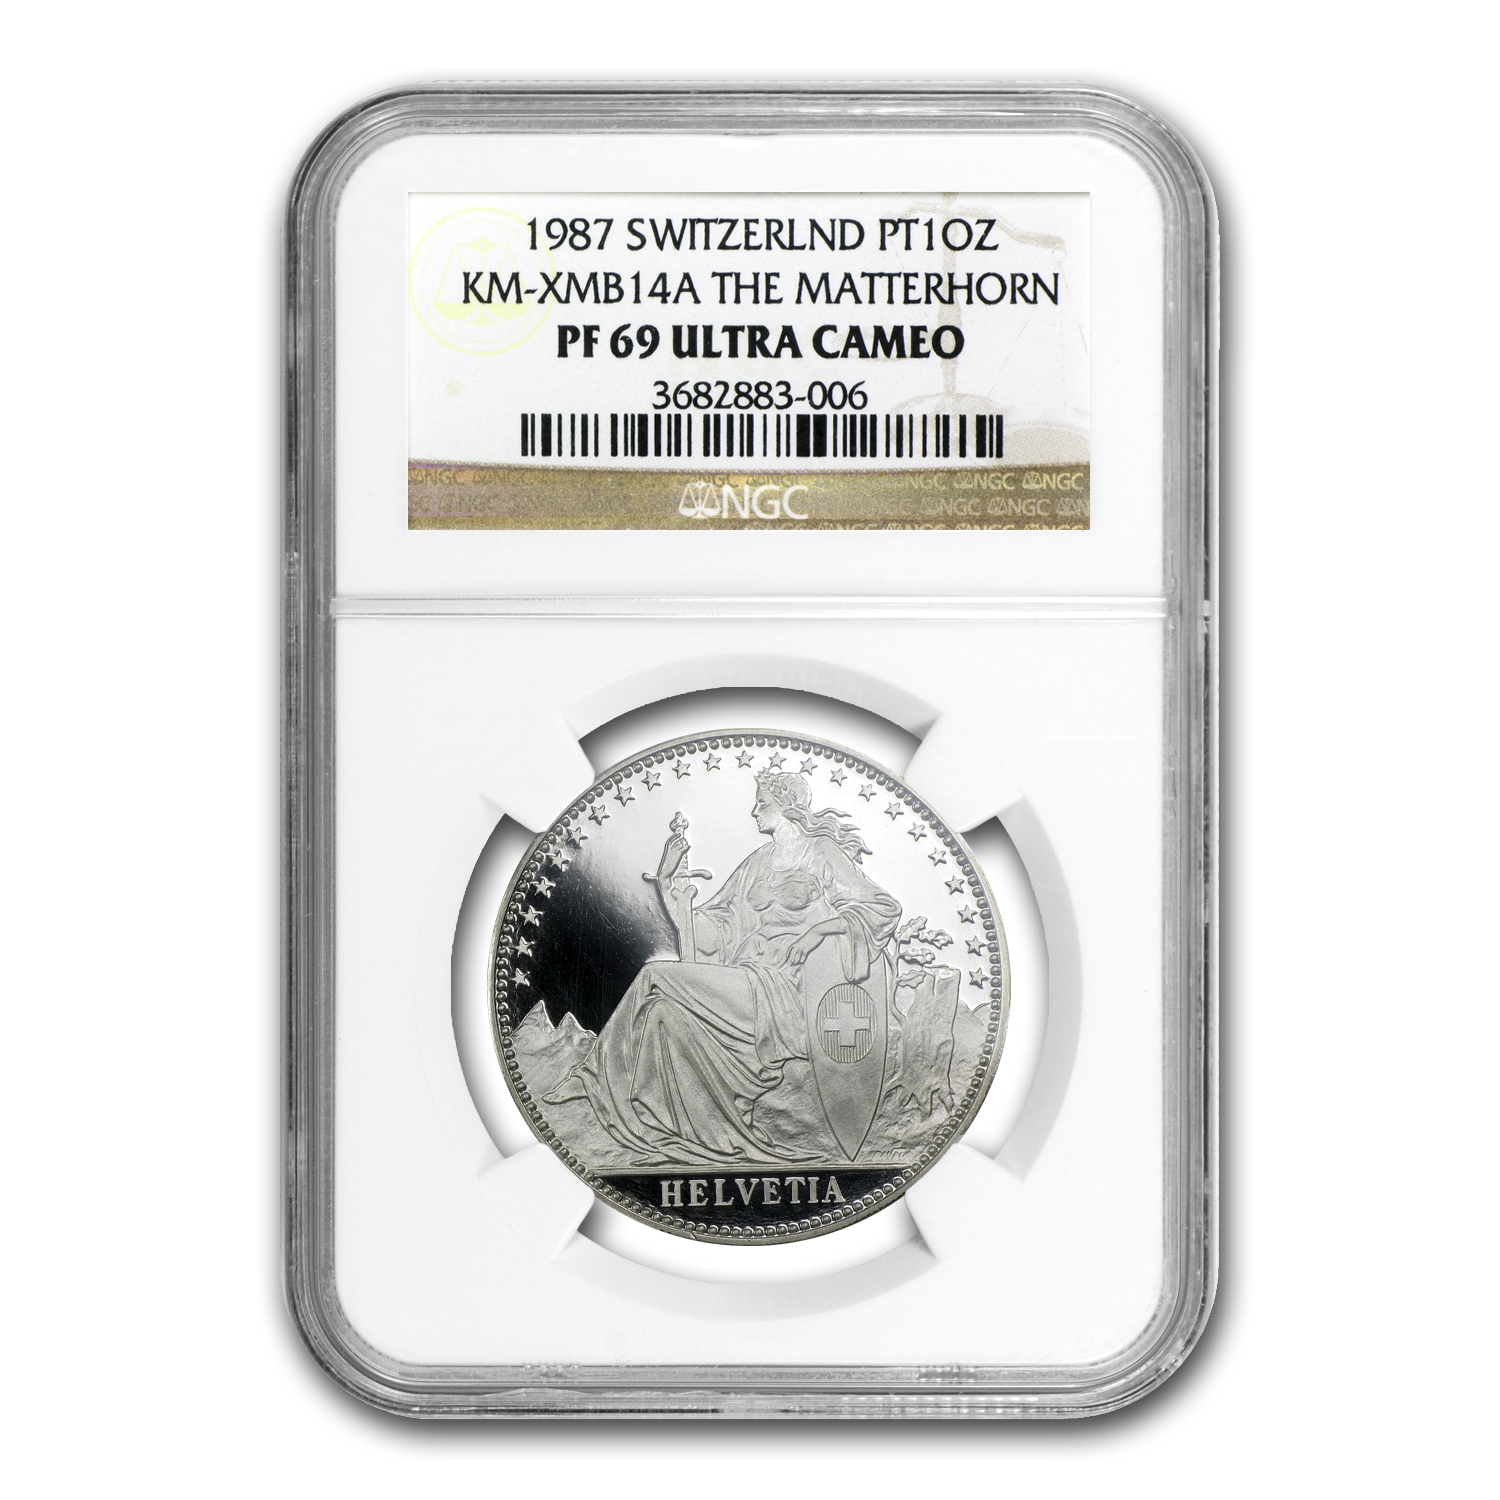 1987 Switzerland 1 oz Proof Platinum Matterhorn PF-69 NGC